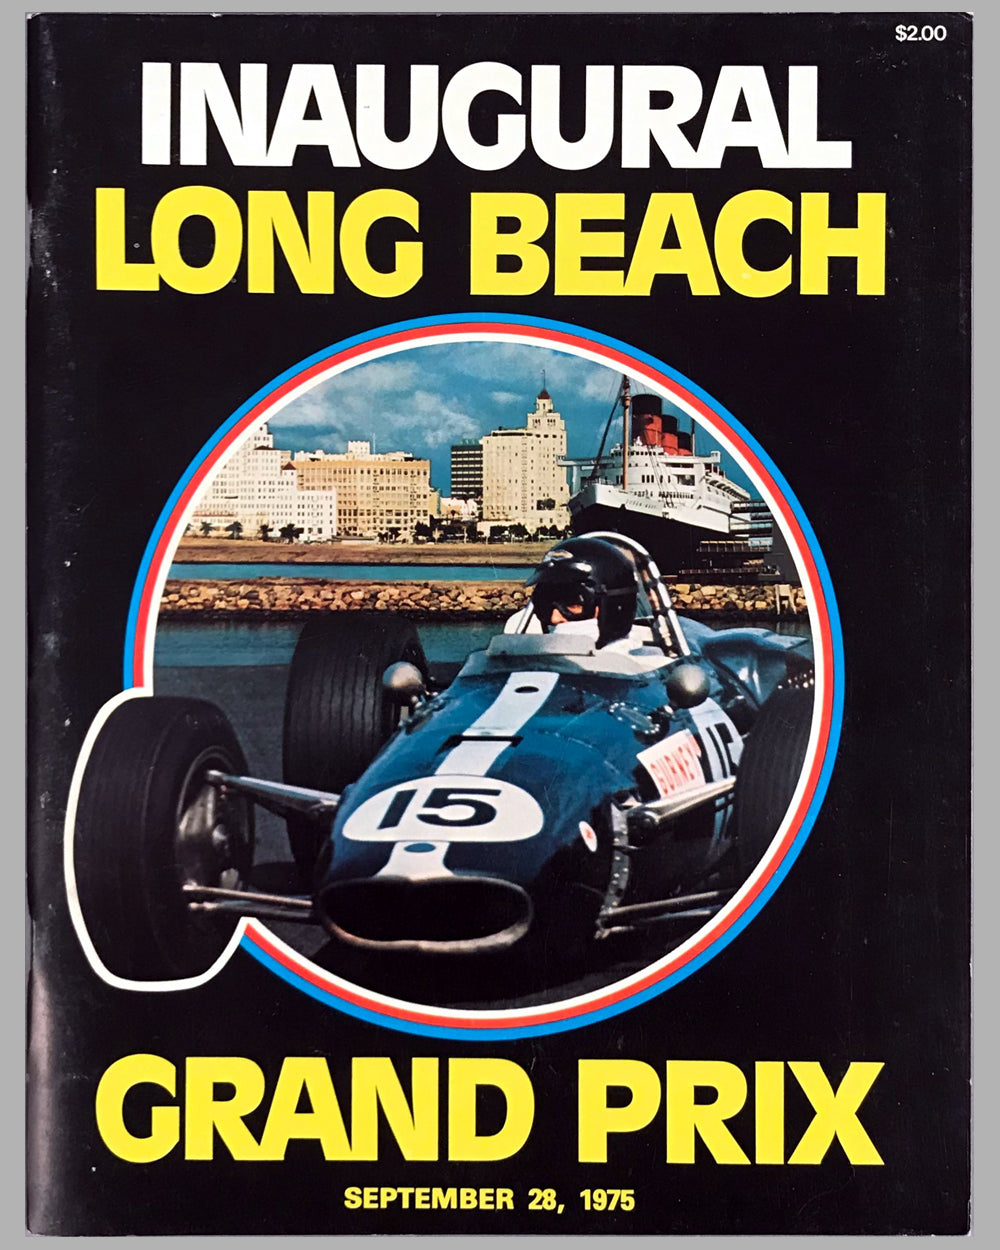 01 - Inaugural Long Beach Grand Prix program, 1975